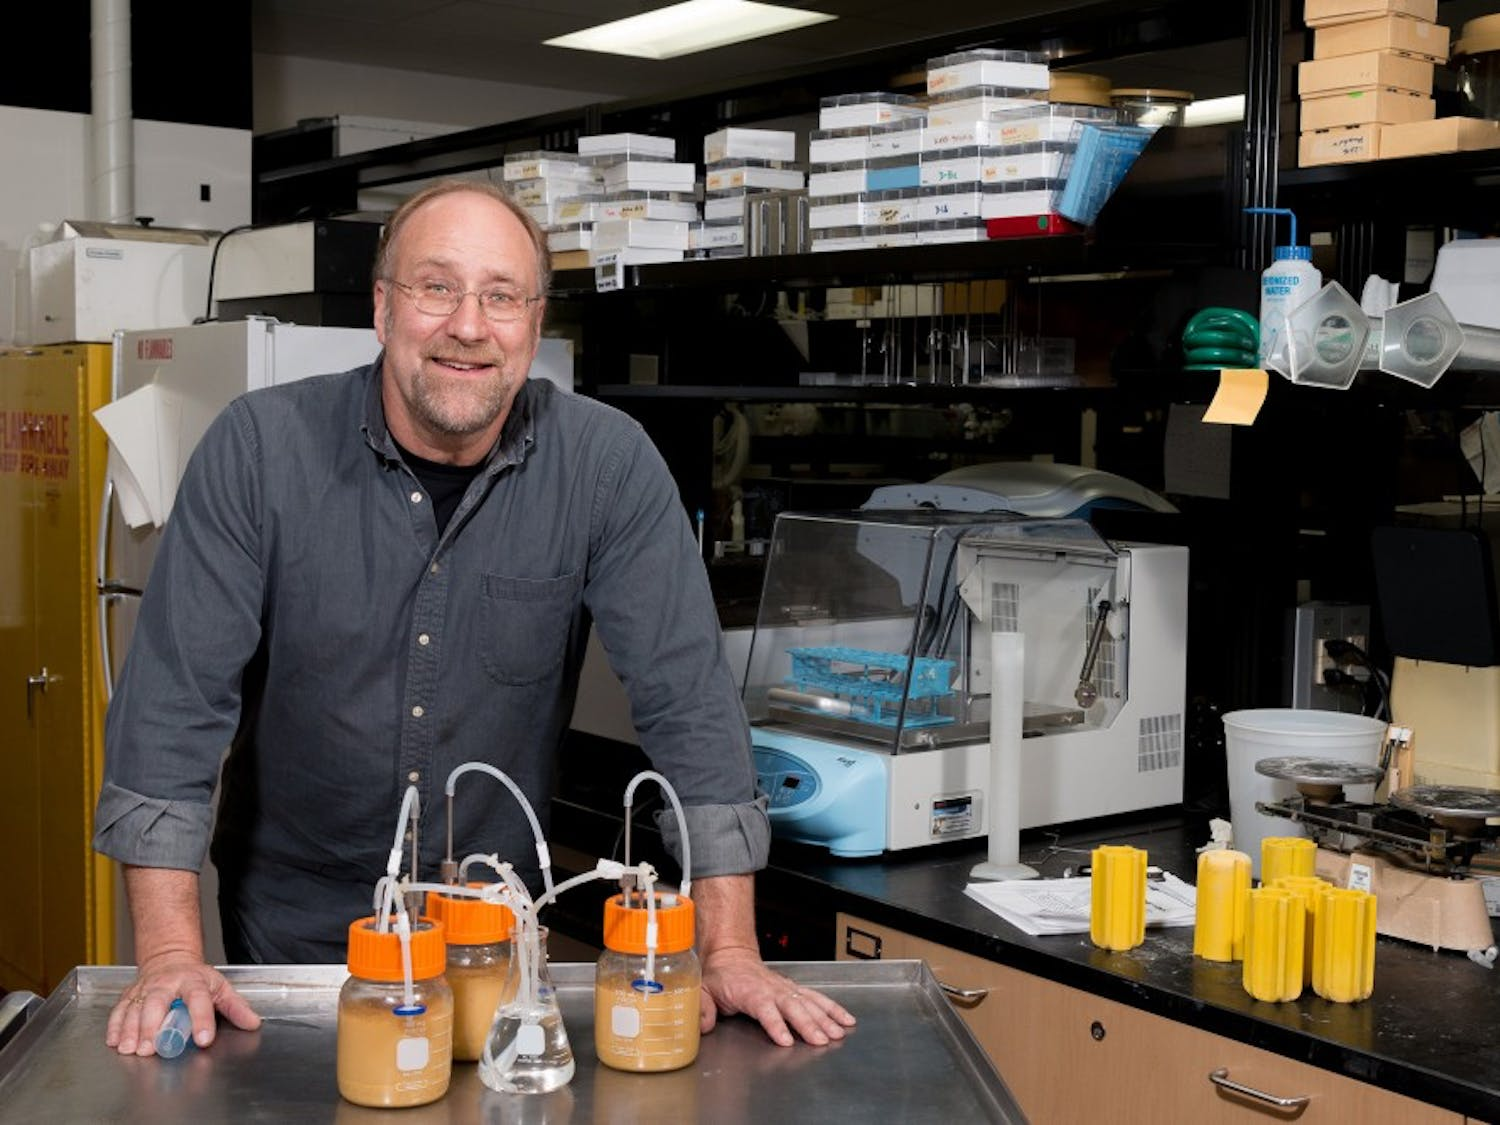 By genetic engineering lactic acid bacteria, James Steele turns a negative into a positive in food science industries.